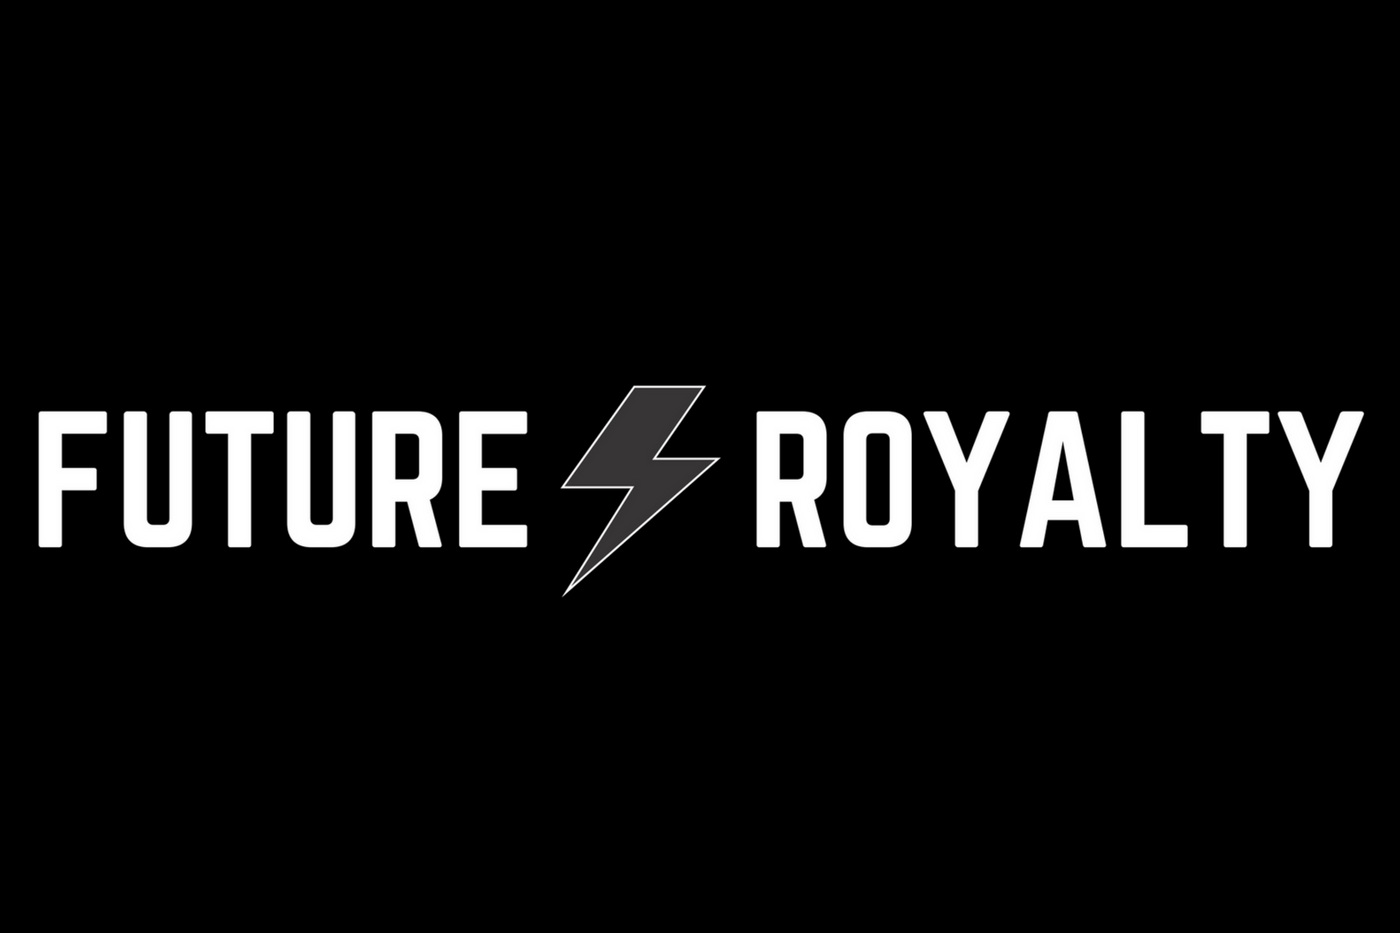 FUTURE ROYALTY -